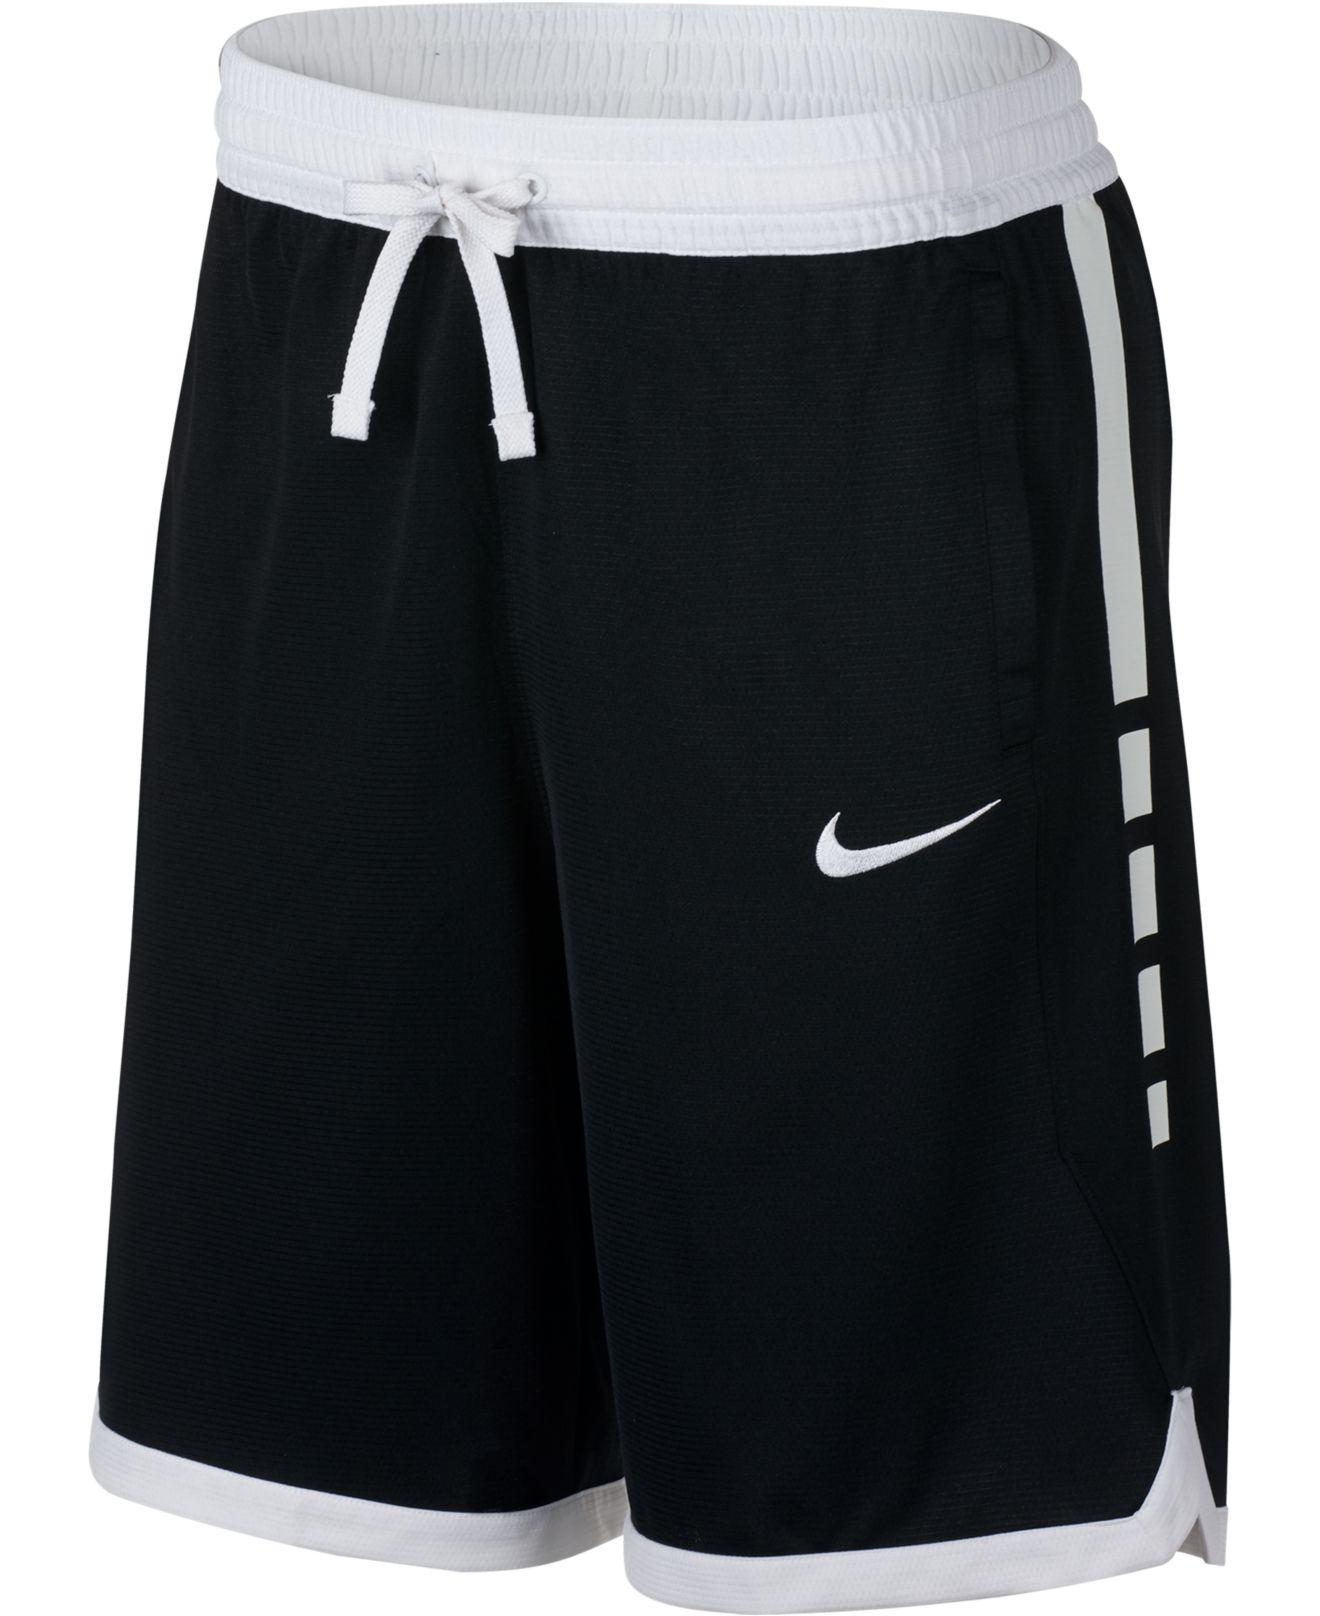 c9aa2fe1bc60 Lyst - Nike Dri-fit Elite Basketball Shorts in Black for Men